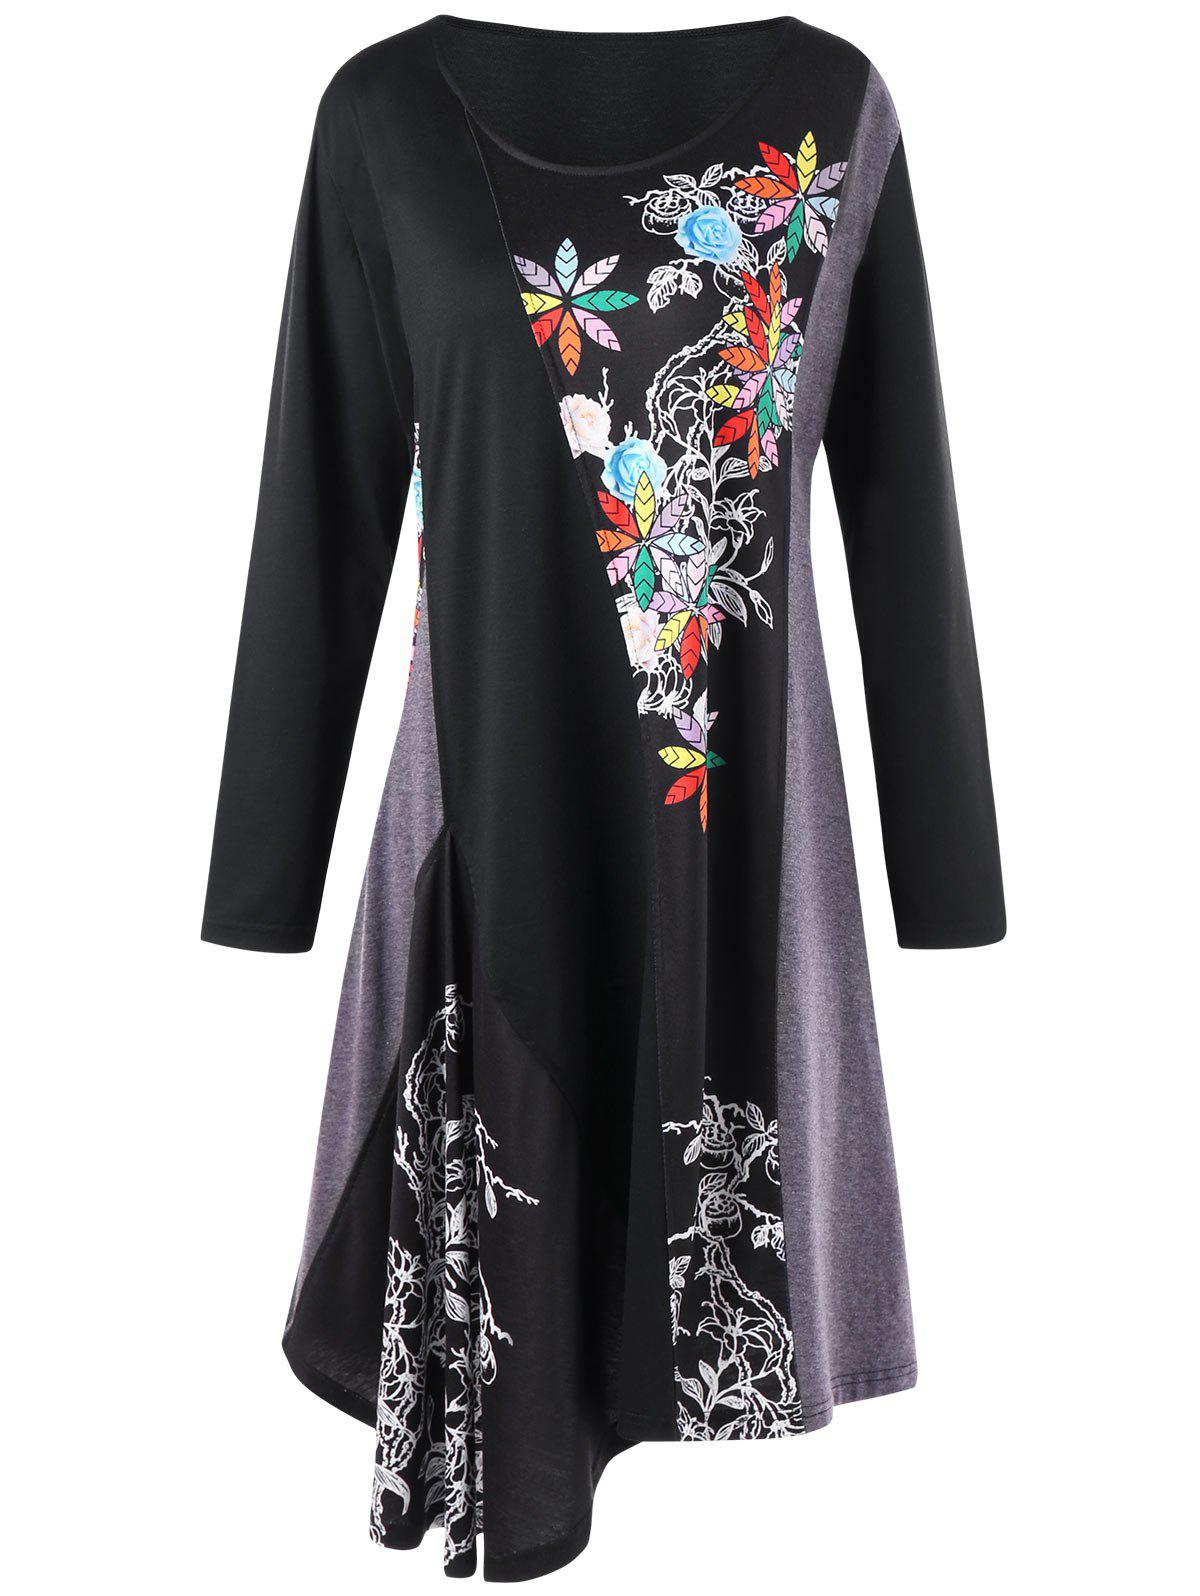 Plus Size Floral Long Sleeve Asymmetric Tee DressWOMEN<br><br>Size: 4XL; Color: BLACK; Style: Casual; Material: Polyester,Spandex; Silhouette: Asymmetrical; Dresses Length: Knee-Length; Neckline: Round Collar; Sleeve Length: Long Sleeves; Pattern Type: Floral; With Belt: No; Season: Fall,Spring; Weight: 0.3800kg; Package Contents: 1 x Dress;